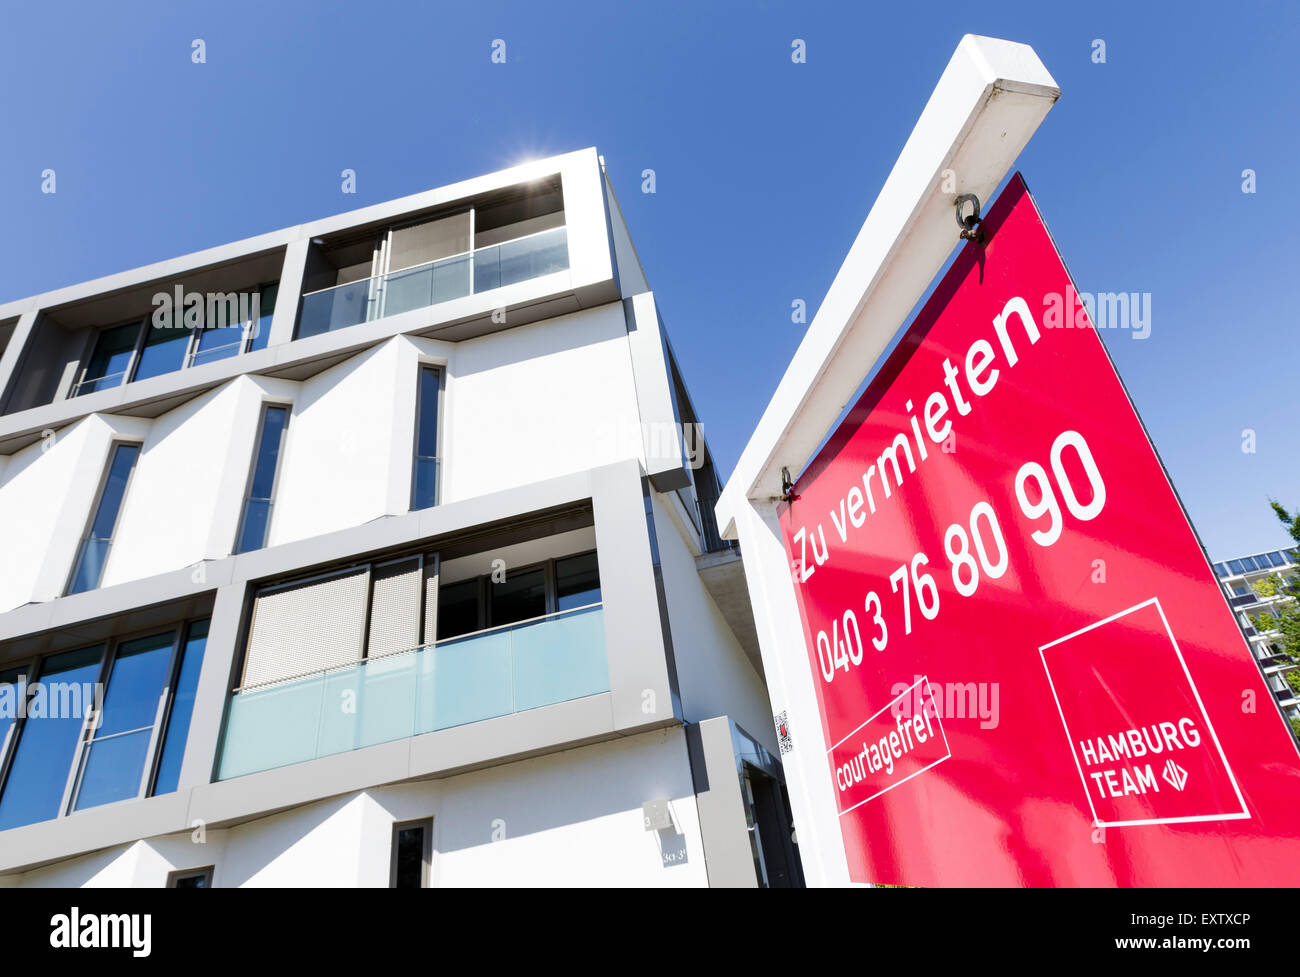 Modern apartments to let in Hamburg, Germany - Stock Image